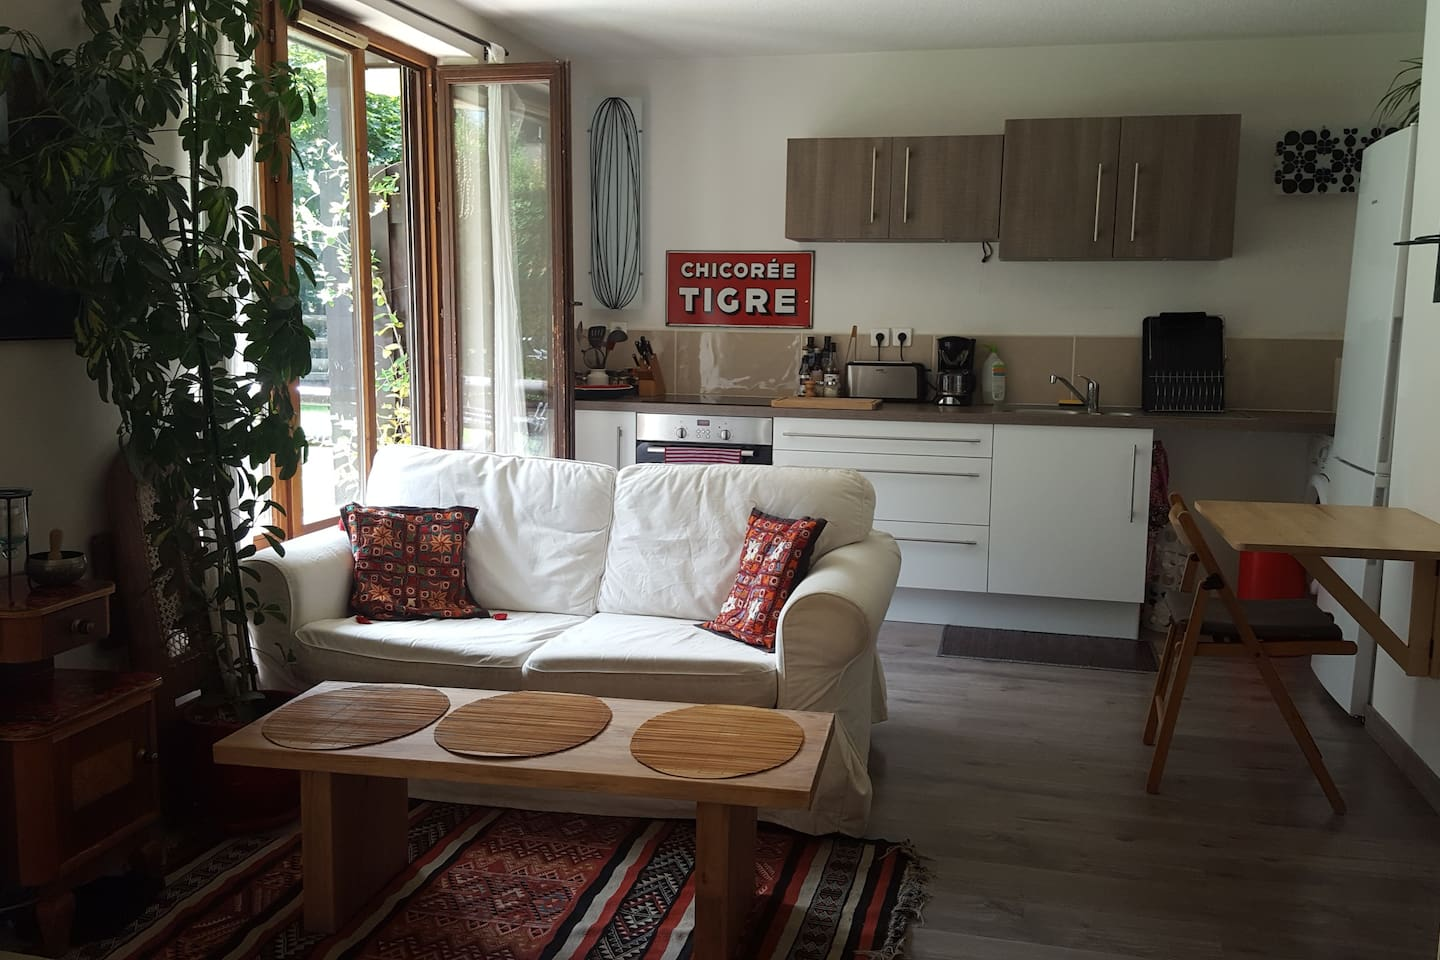 Sitting area and kitchen